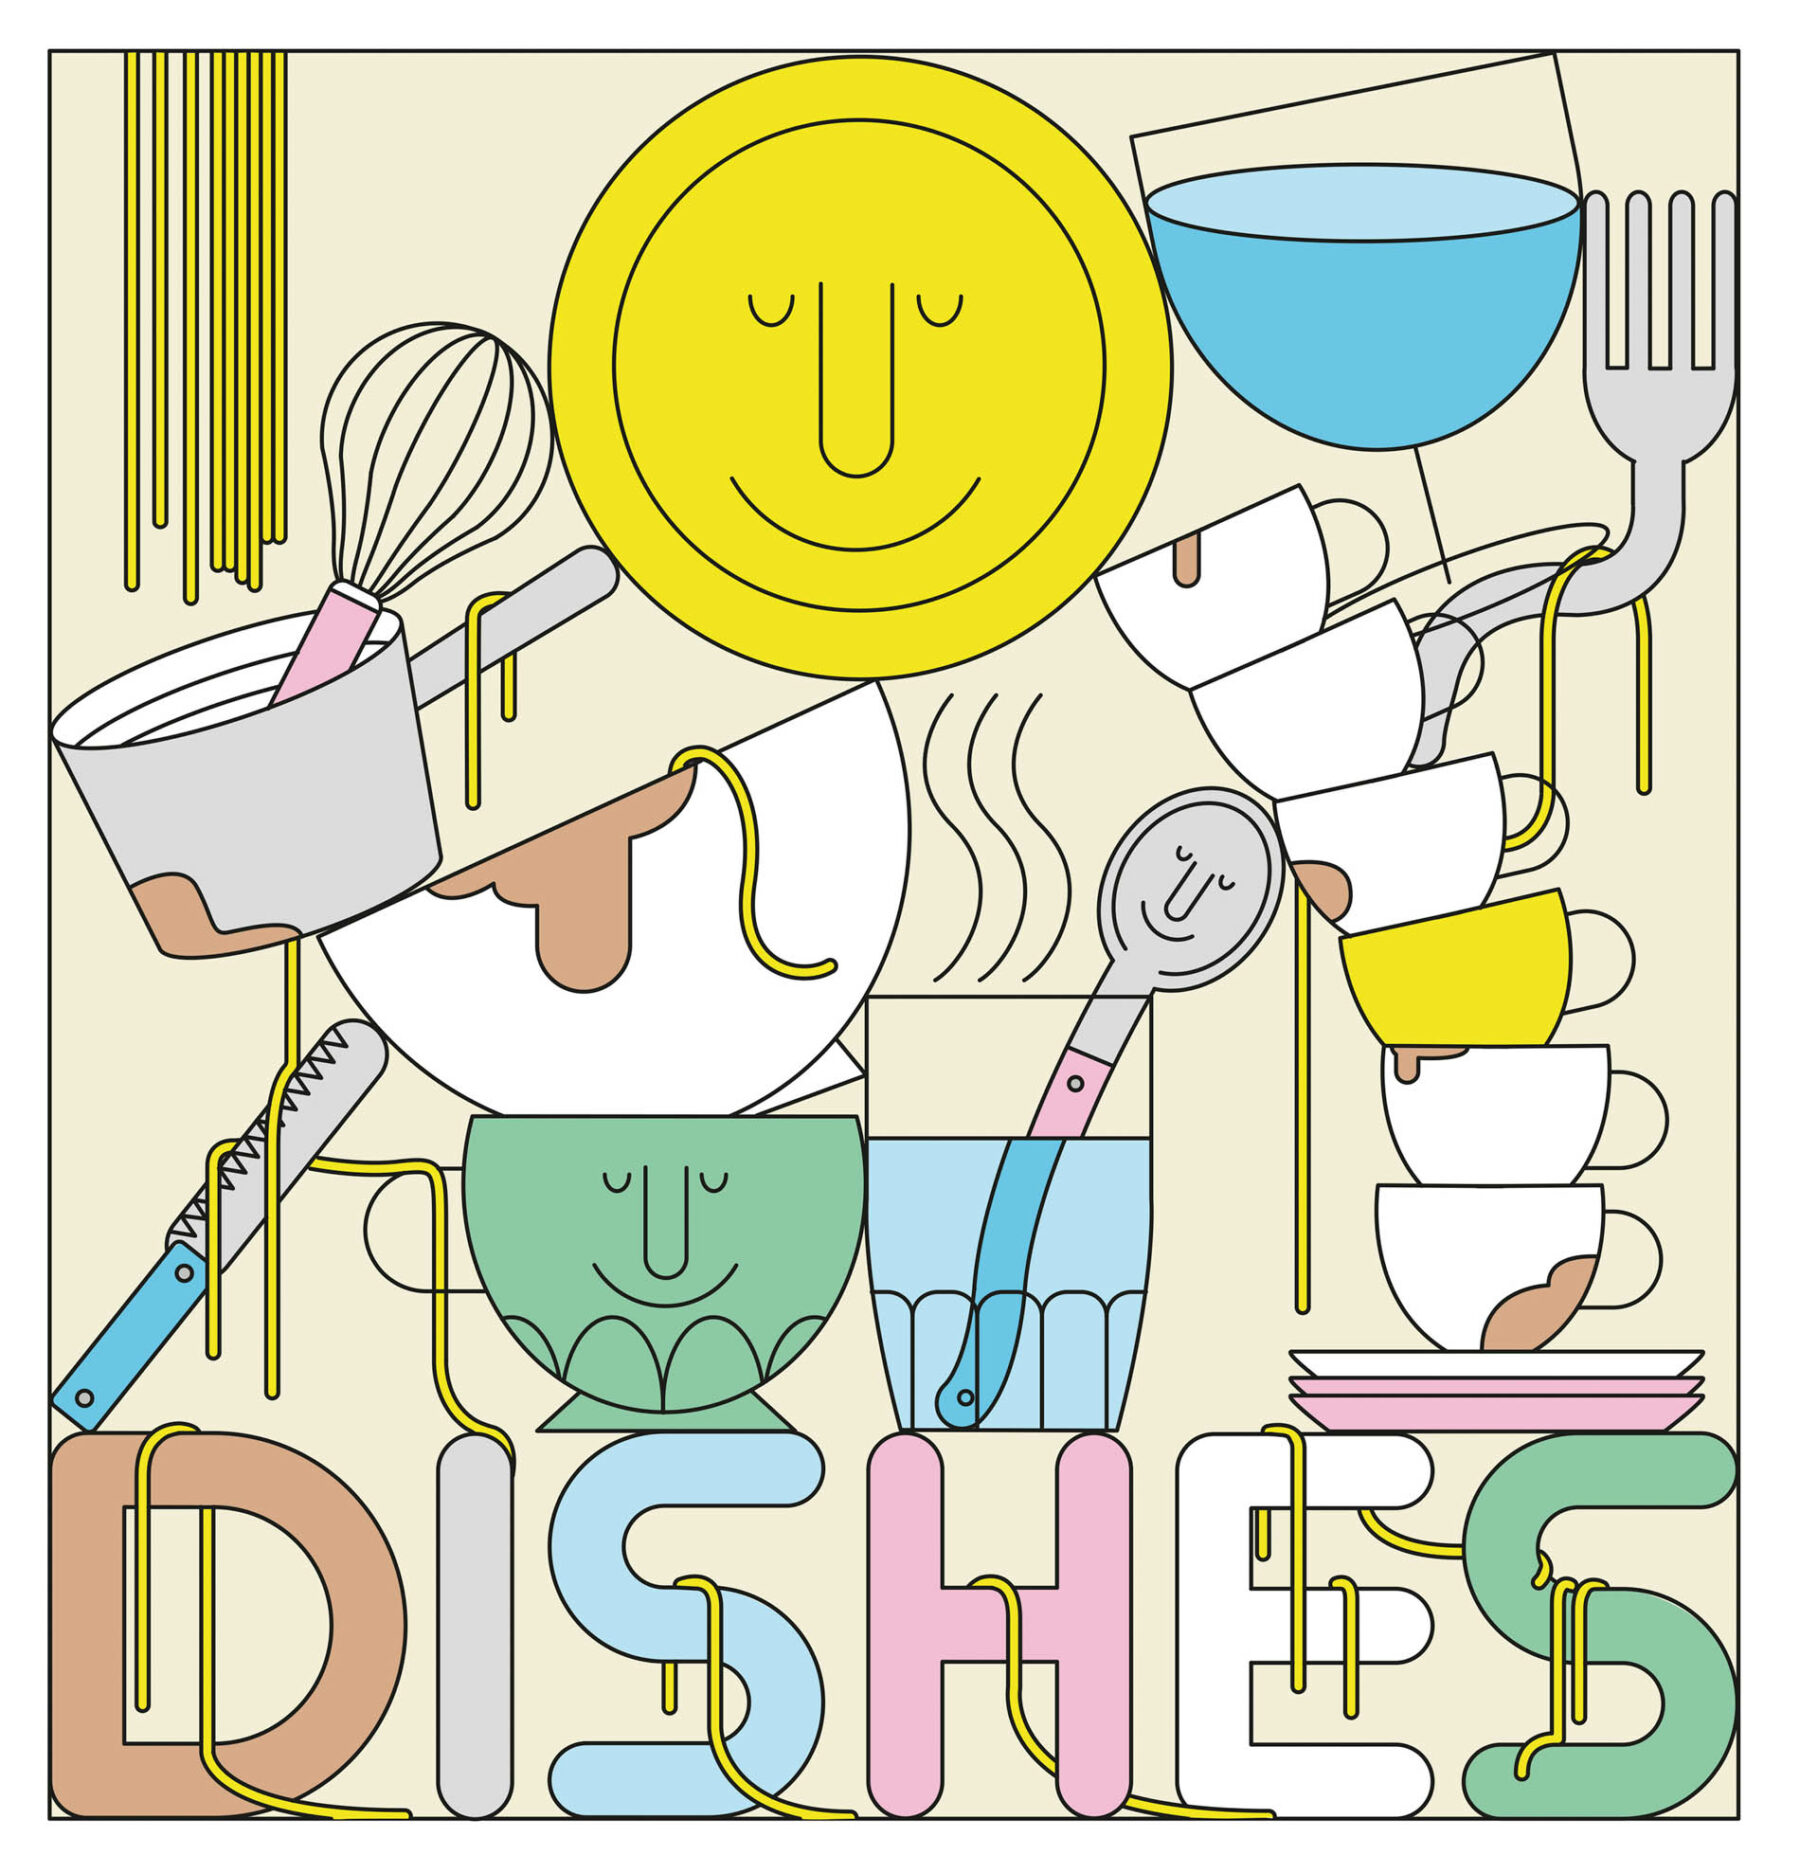 Dishes - Personal work